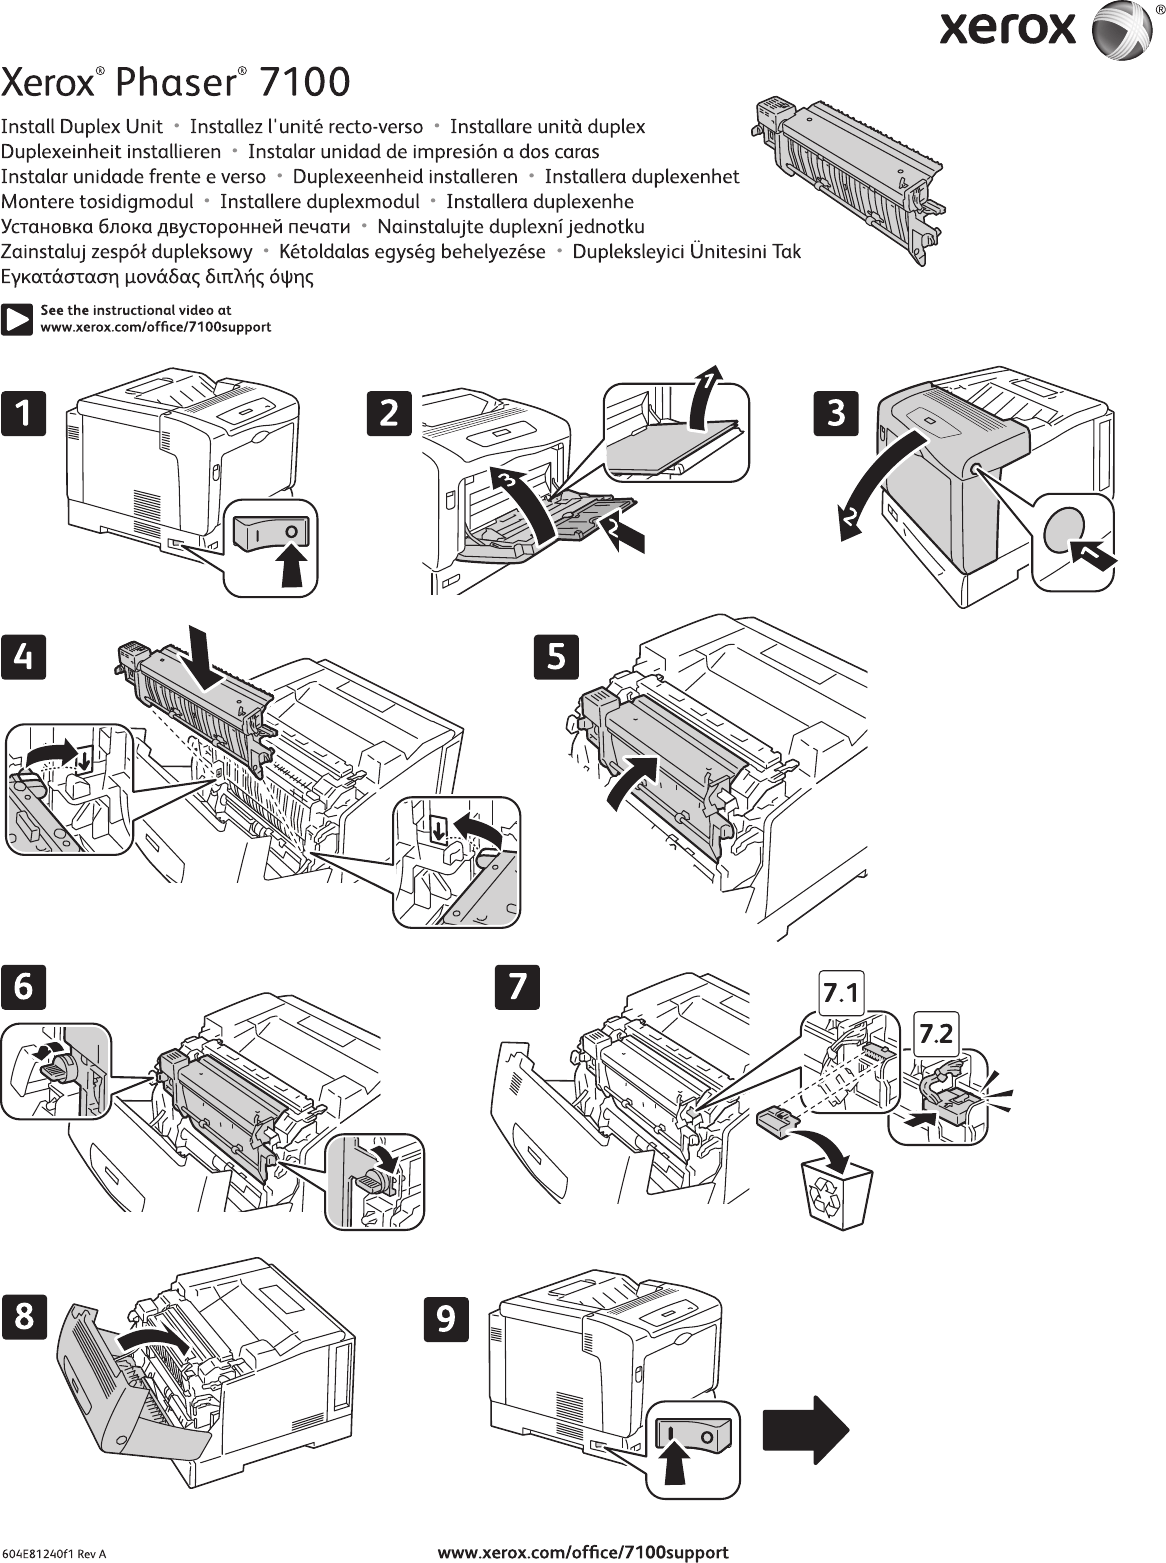 Xerox Phaser 7100 Users Manual Duplex Unit (install